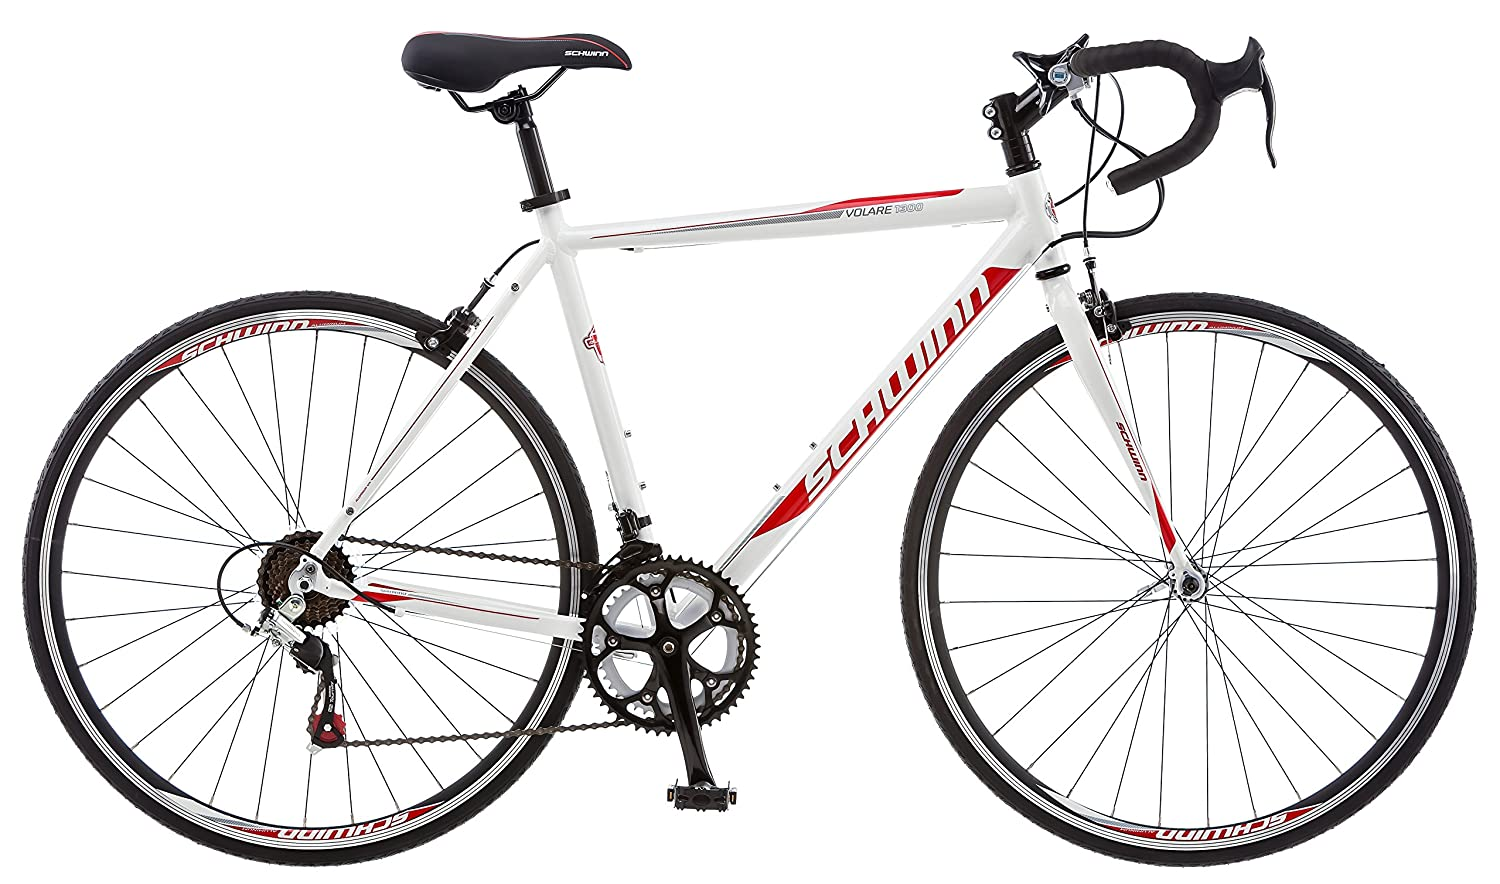 Schwinn Volare 1300 Men's 700C Drop Bar Road Bicycle